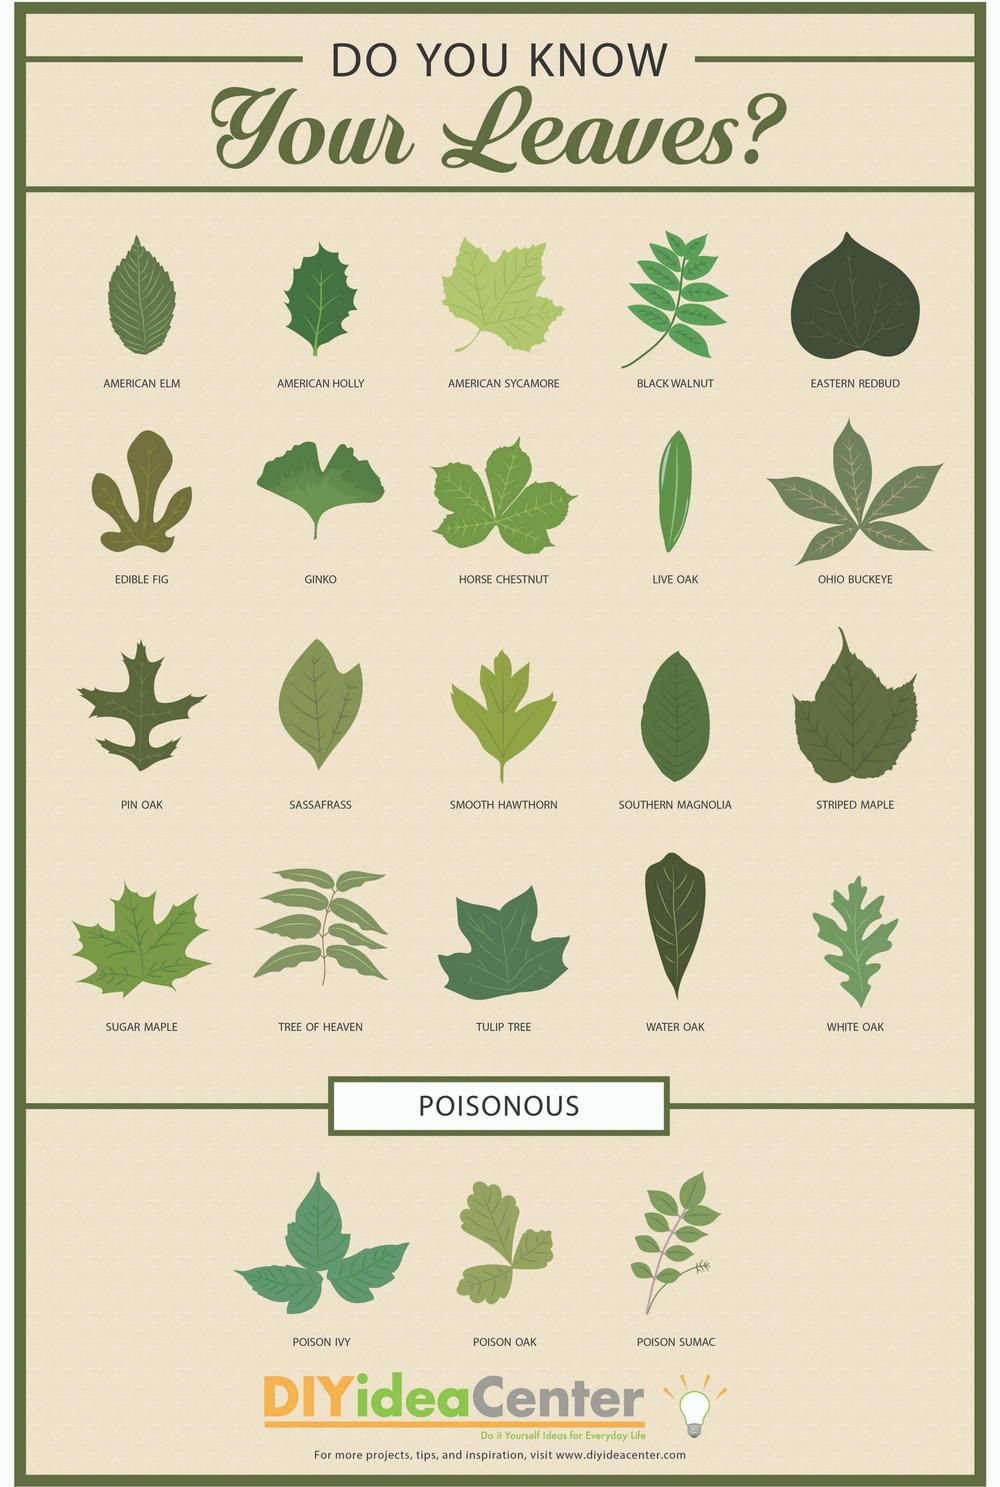 elm tree leaves on leaf identification guide infographic leaf identification tree leaf identification plant identification tree leaf identification